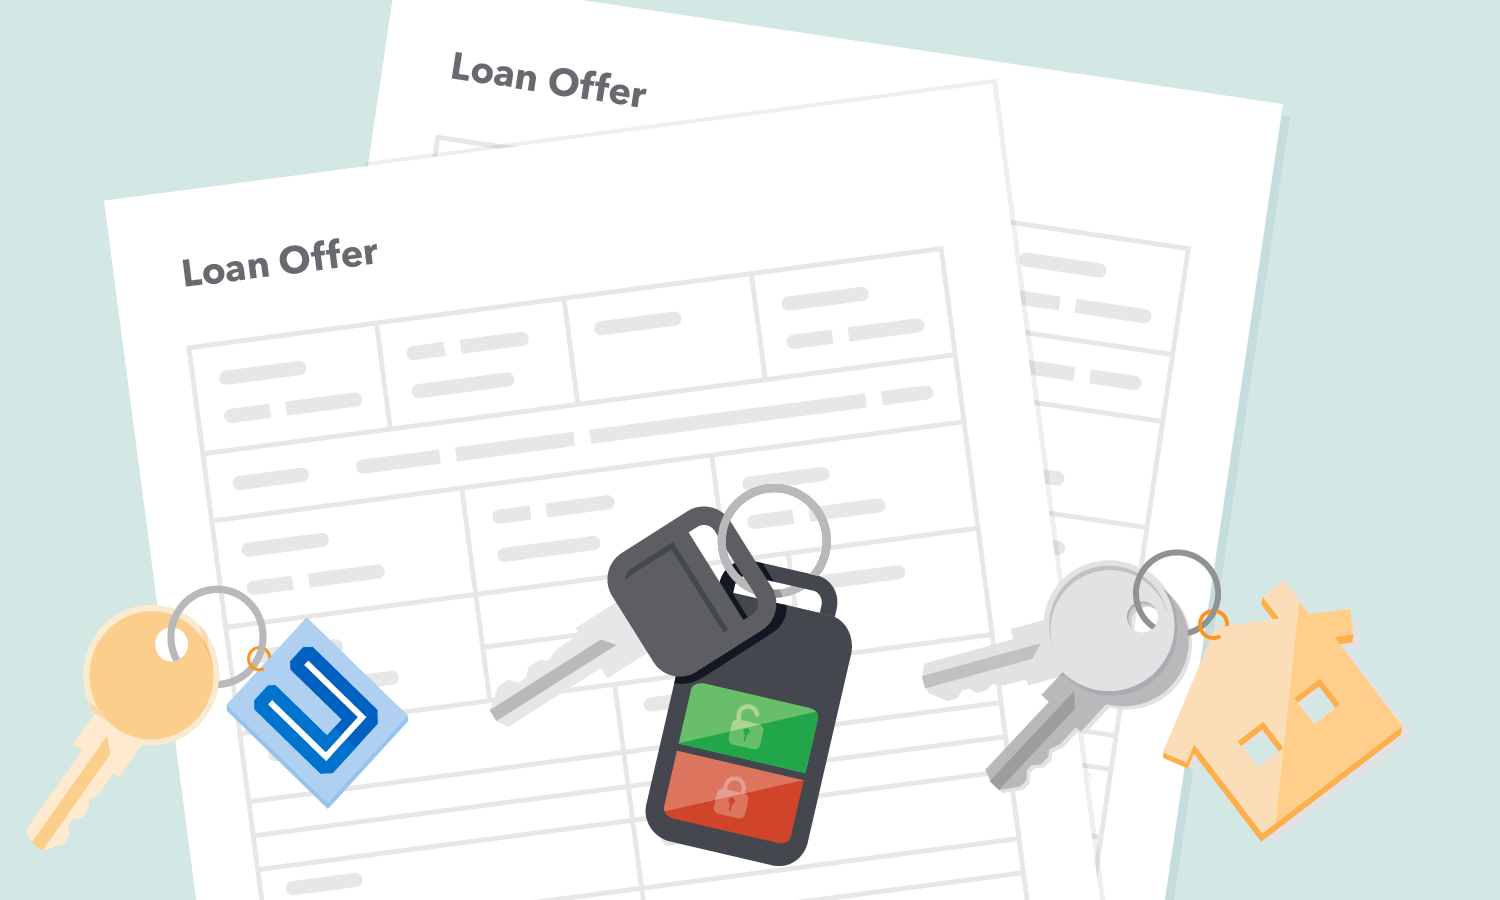 Loan offer forms